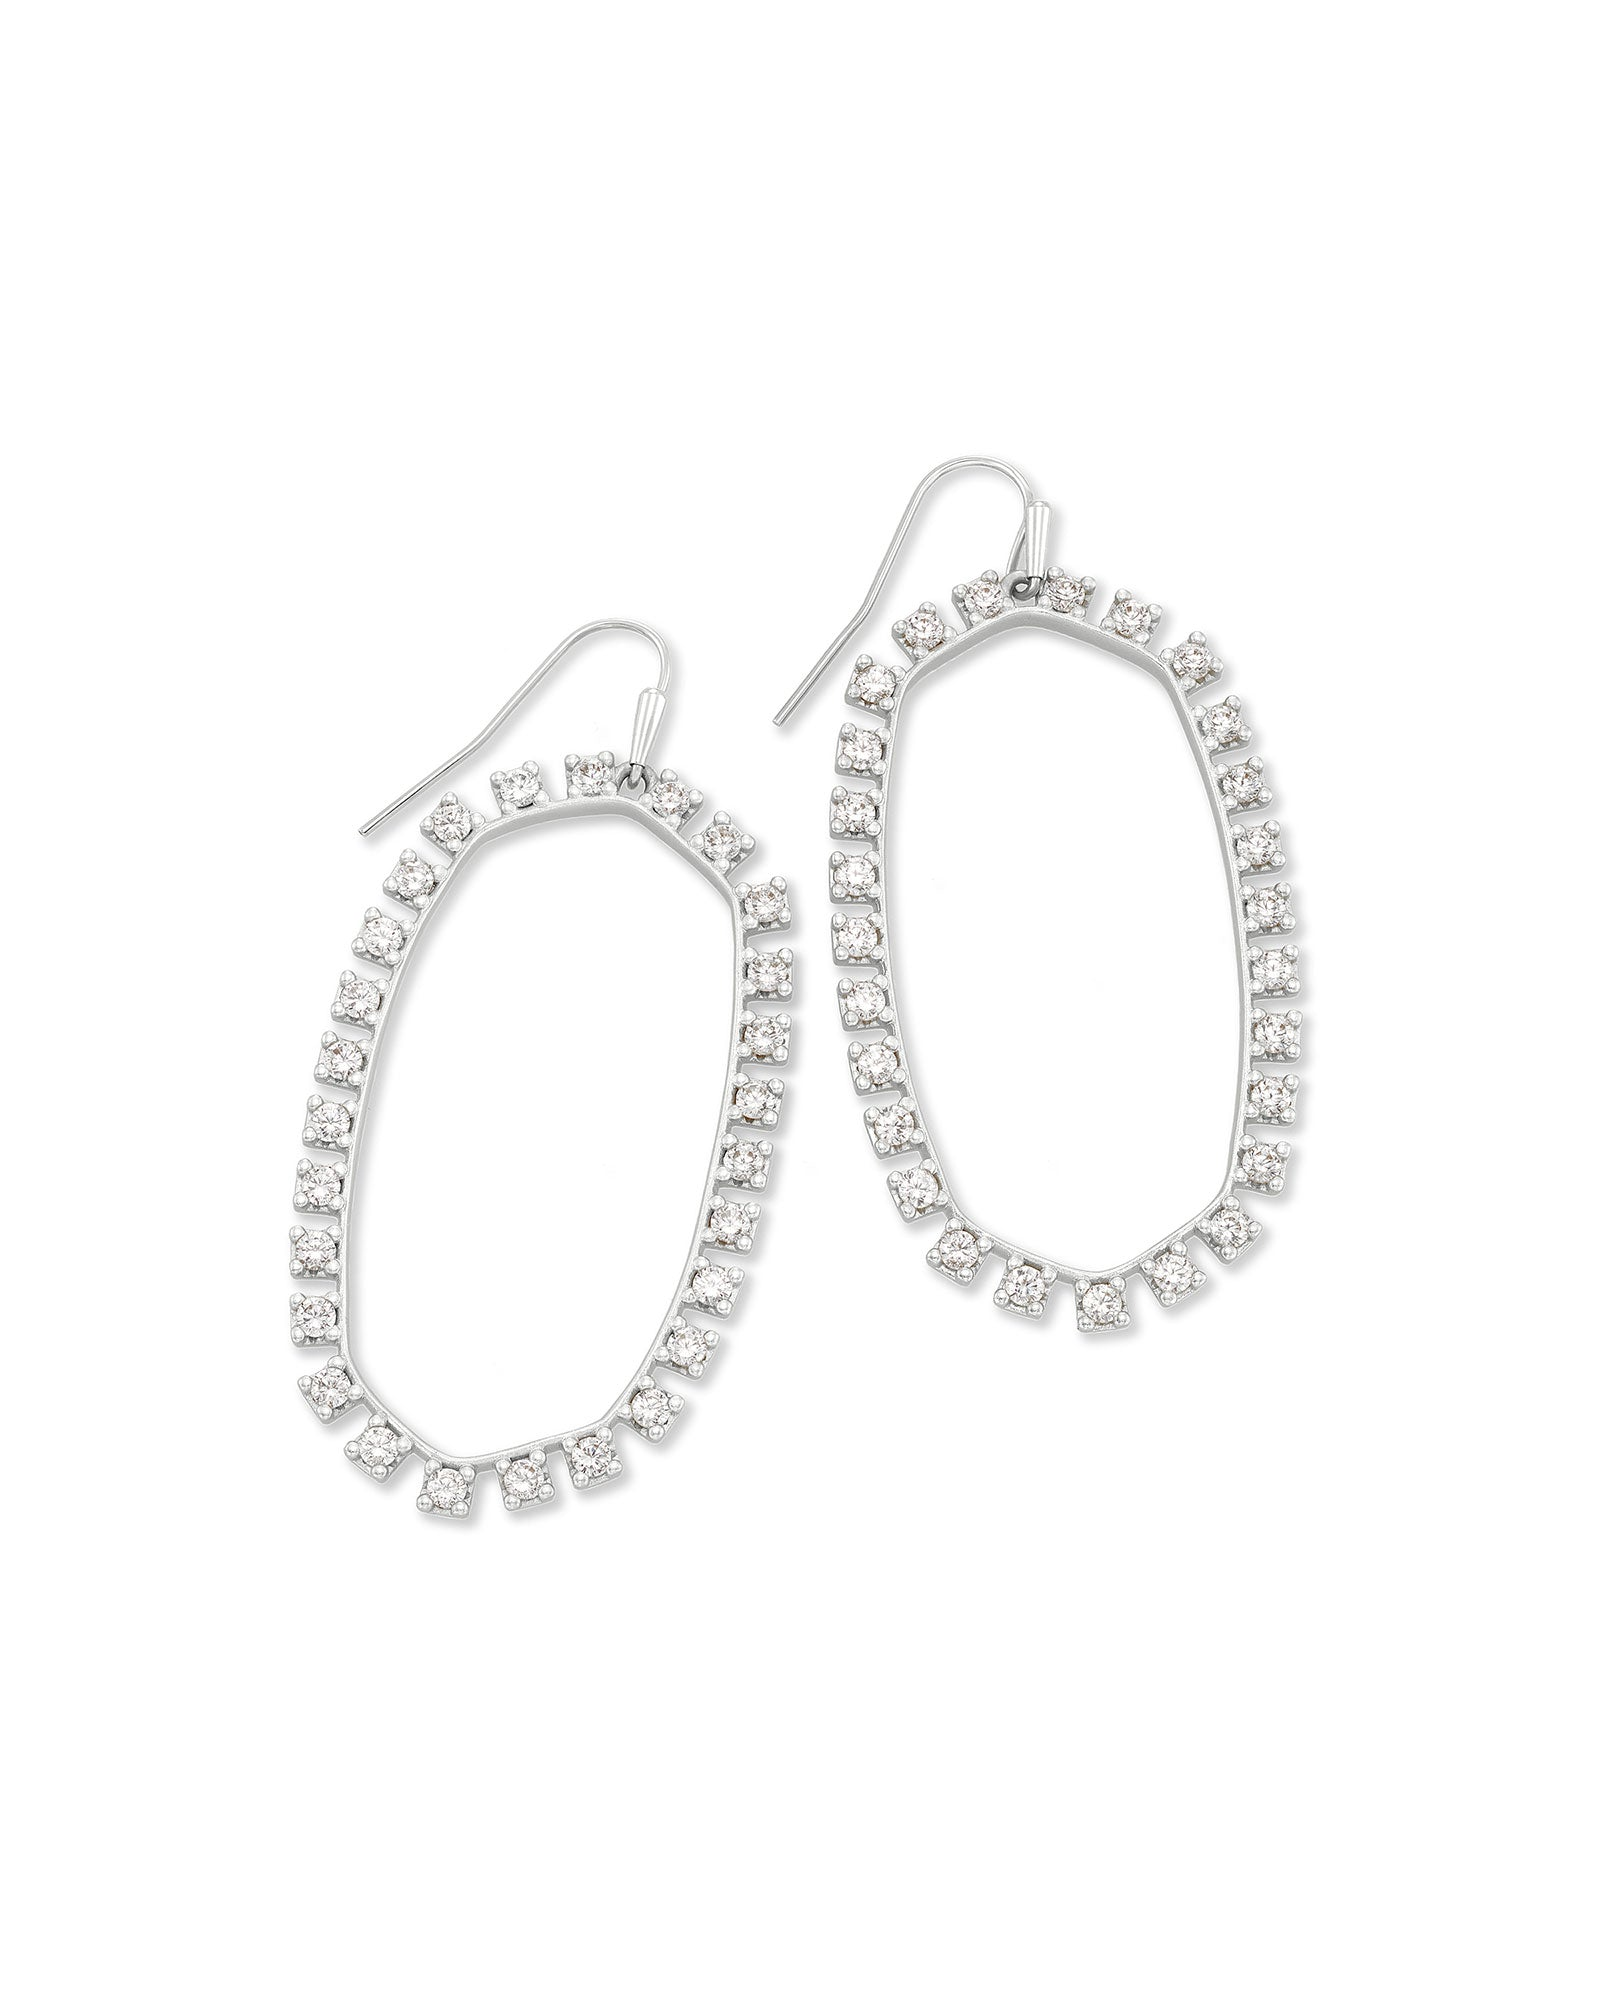 Kendra Scott Danielle Open Frame Crystal Statement Earrings In Silver